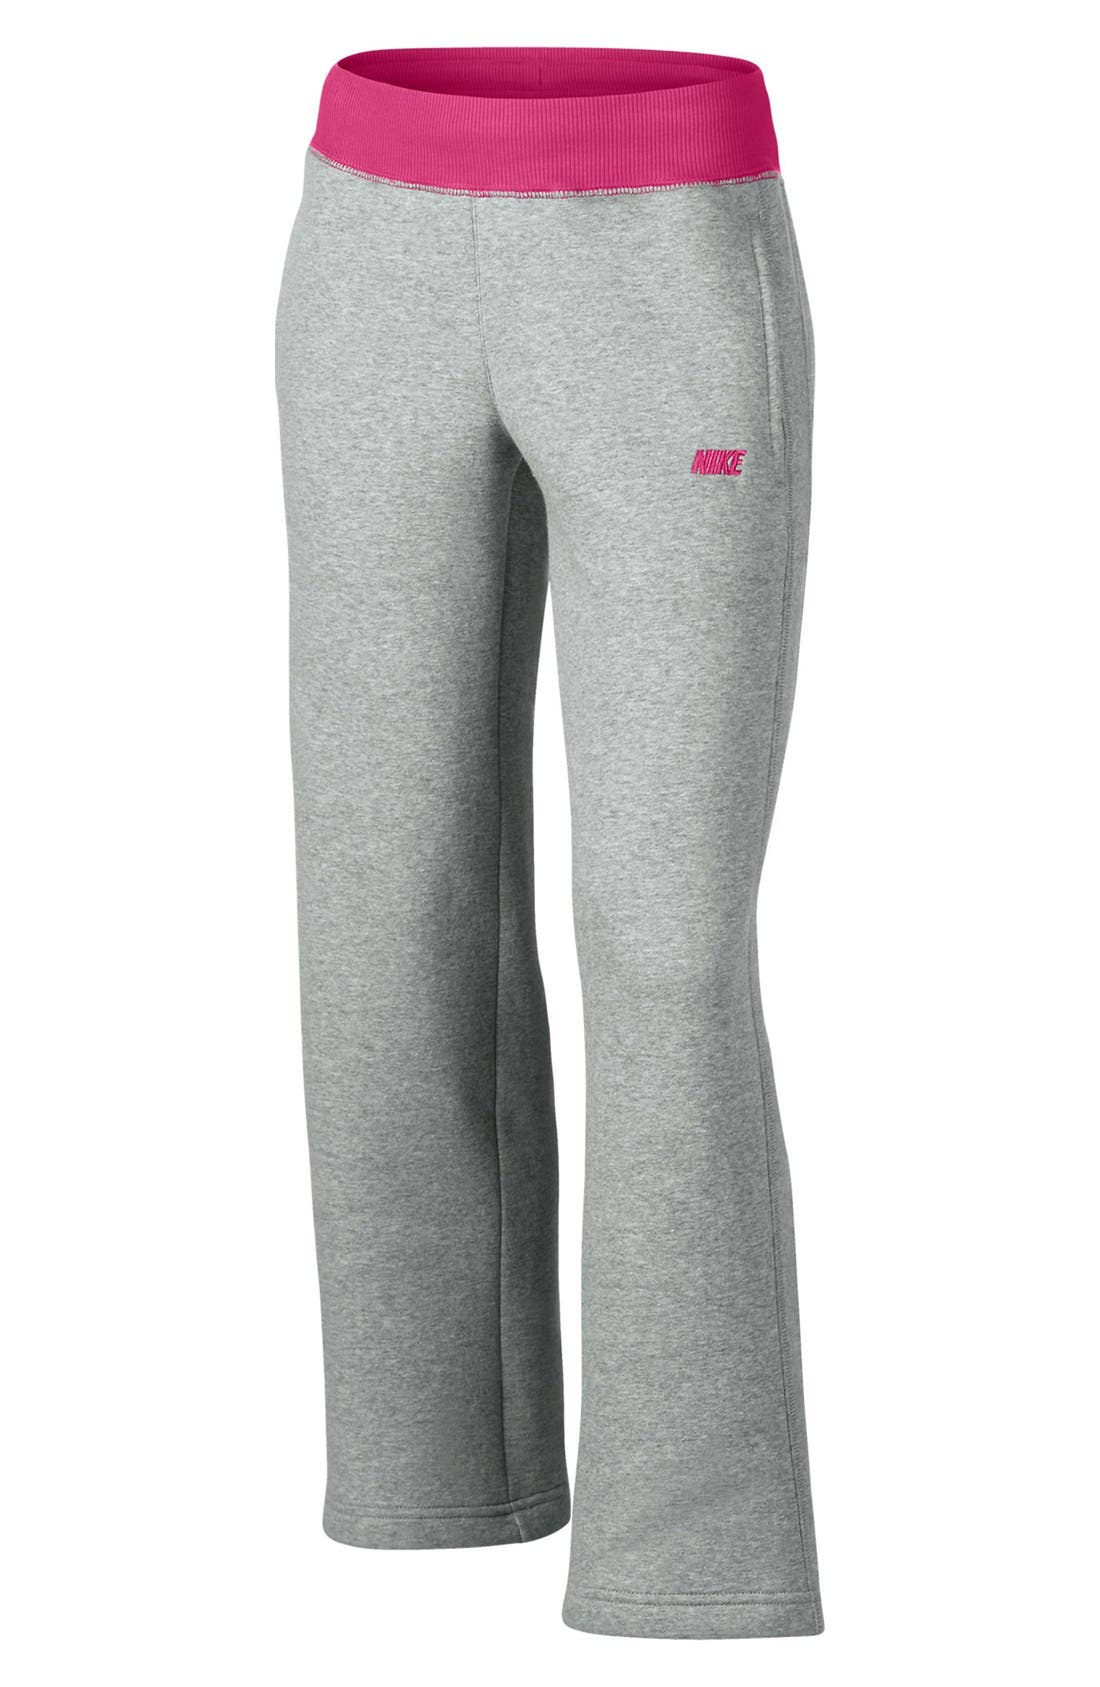 Main Image - Nike 'N40' Fleece Pants (Little Girls & Big Girls)